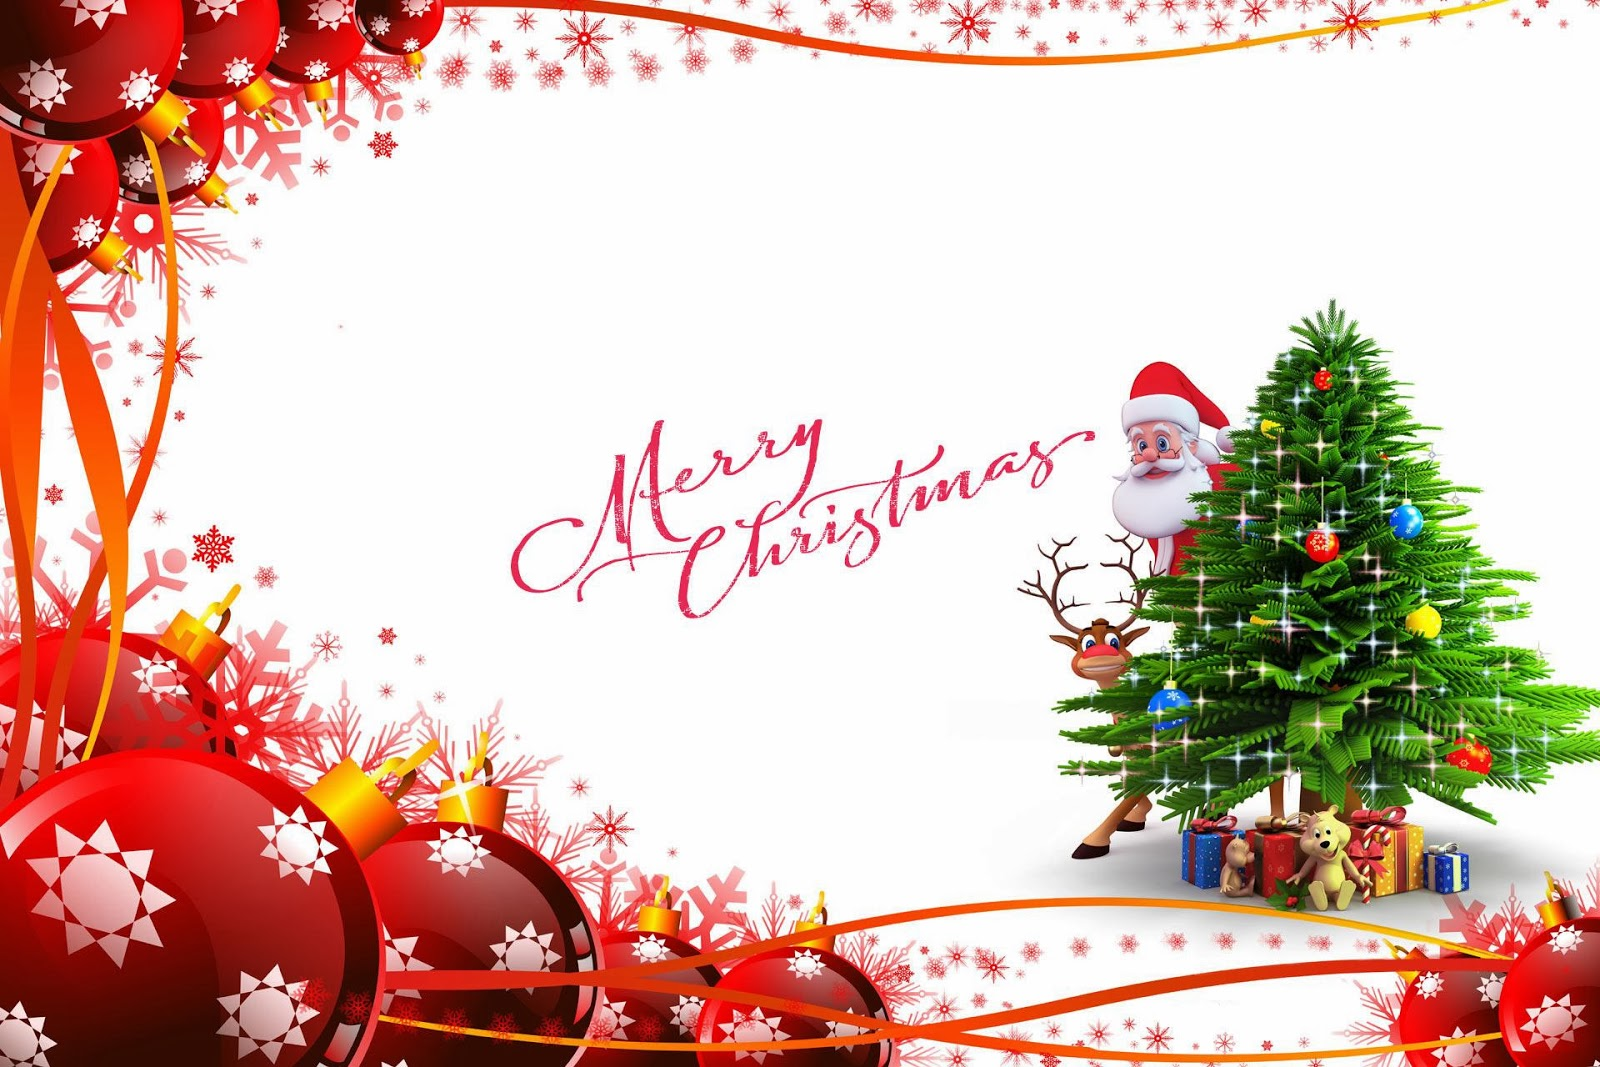 Advance Merry Christmas Day 2014 Wishes Quotes Greetings